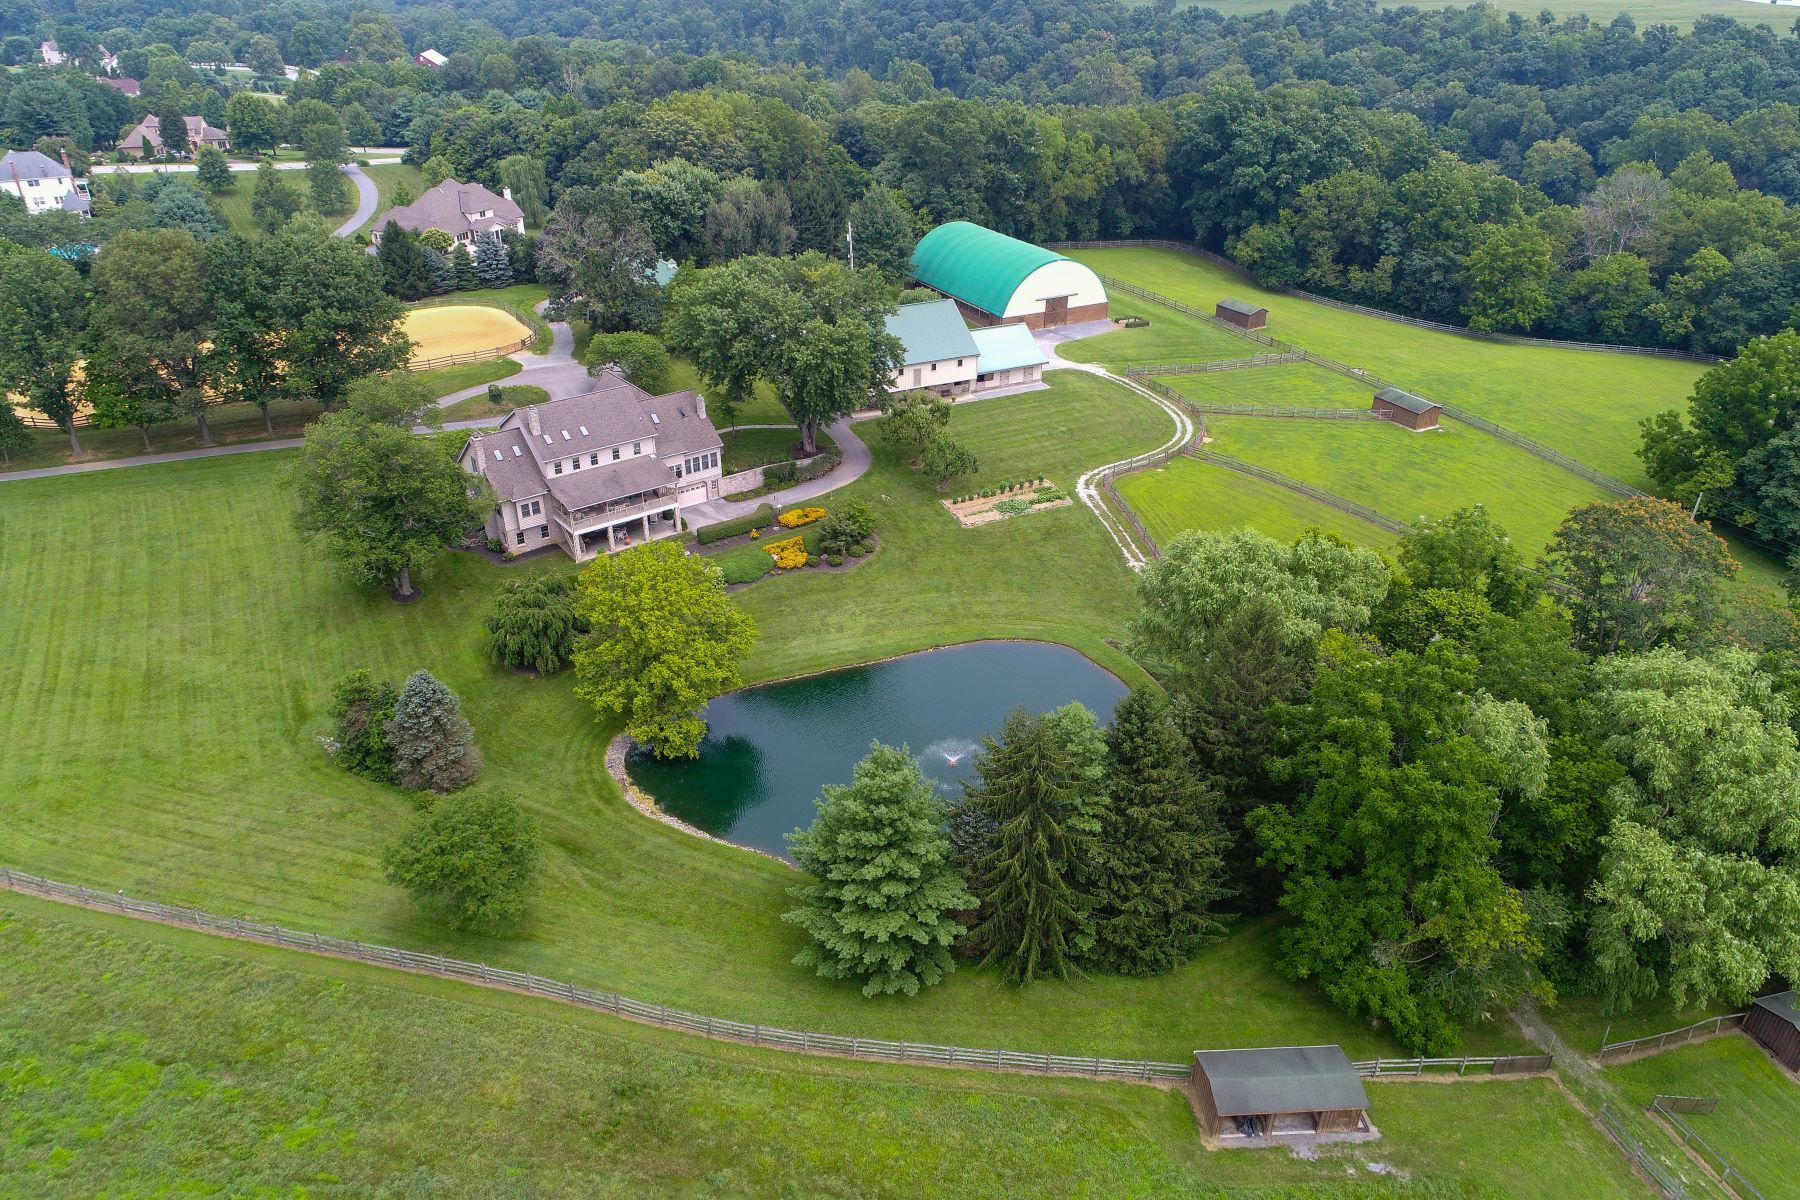 Property for Sale at Horse Farm, Millersville 0 Road Millersville, Pennsylvania 17551 United States